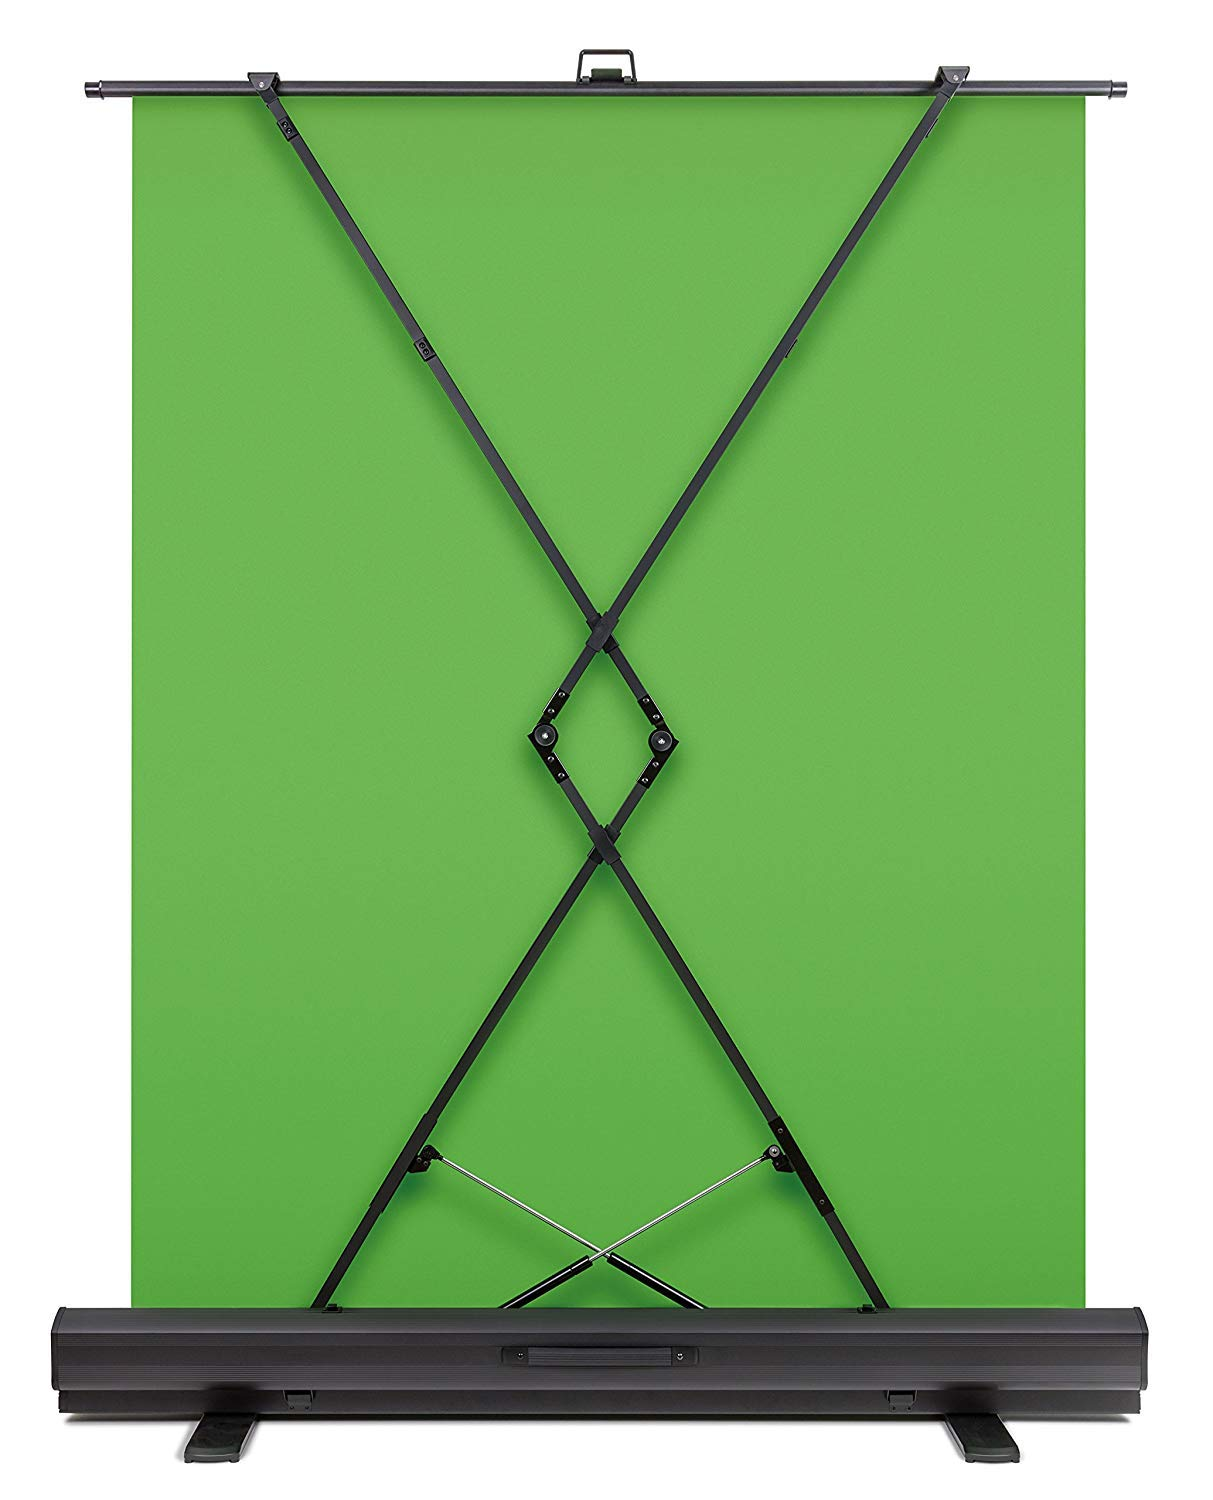 Collapsible chroma key panel for background removal with auto-locking frame Elgato Green Screen wrinkle-resistant chroma-green fabric aluminum hard case ultra-quick setup and breakdown